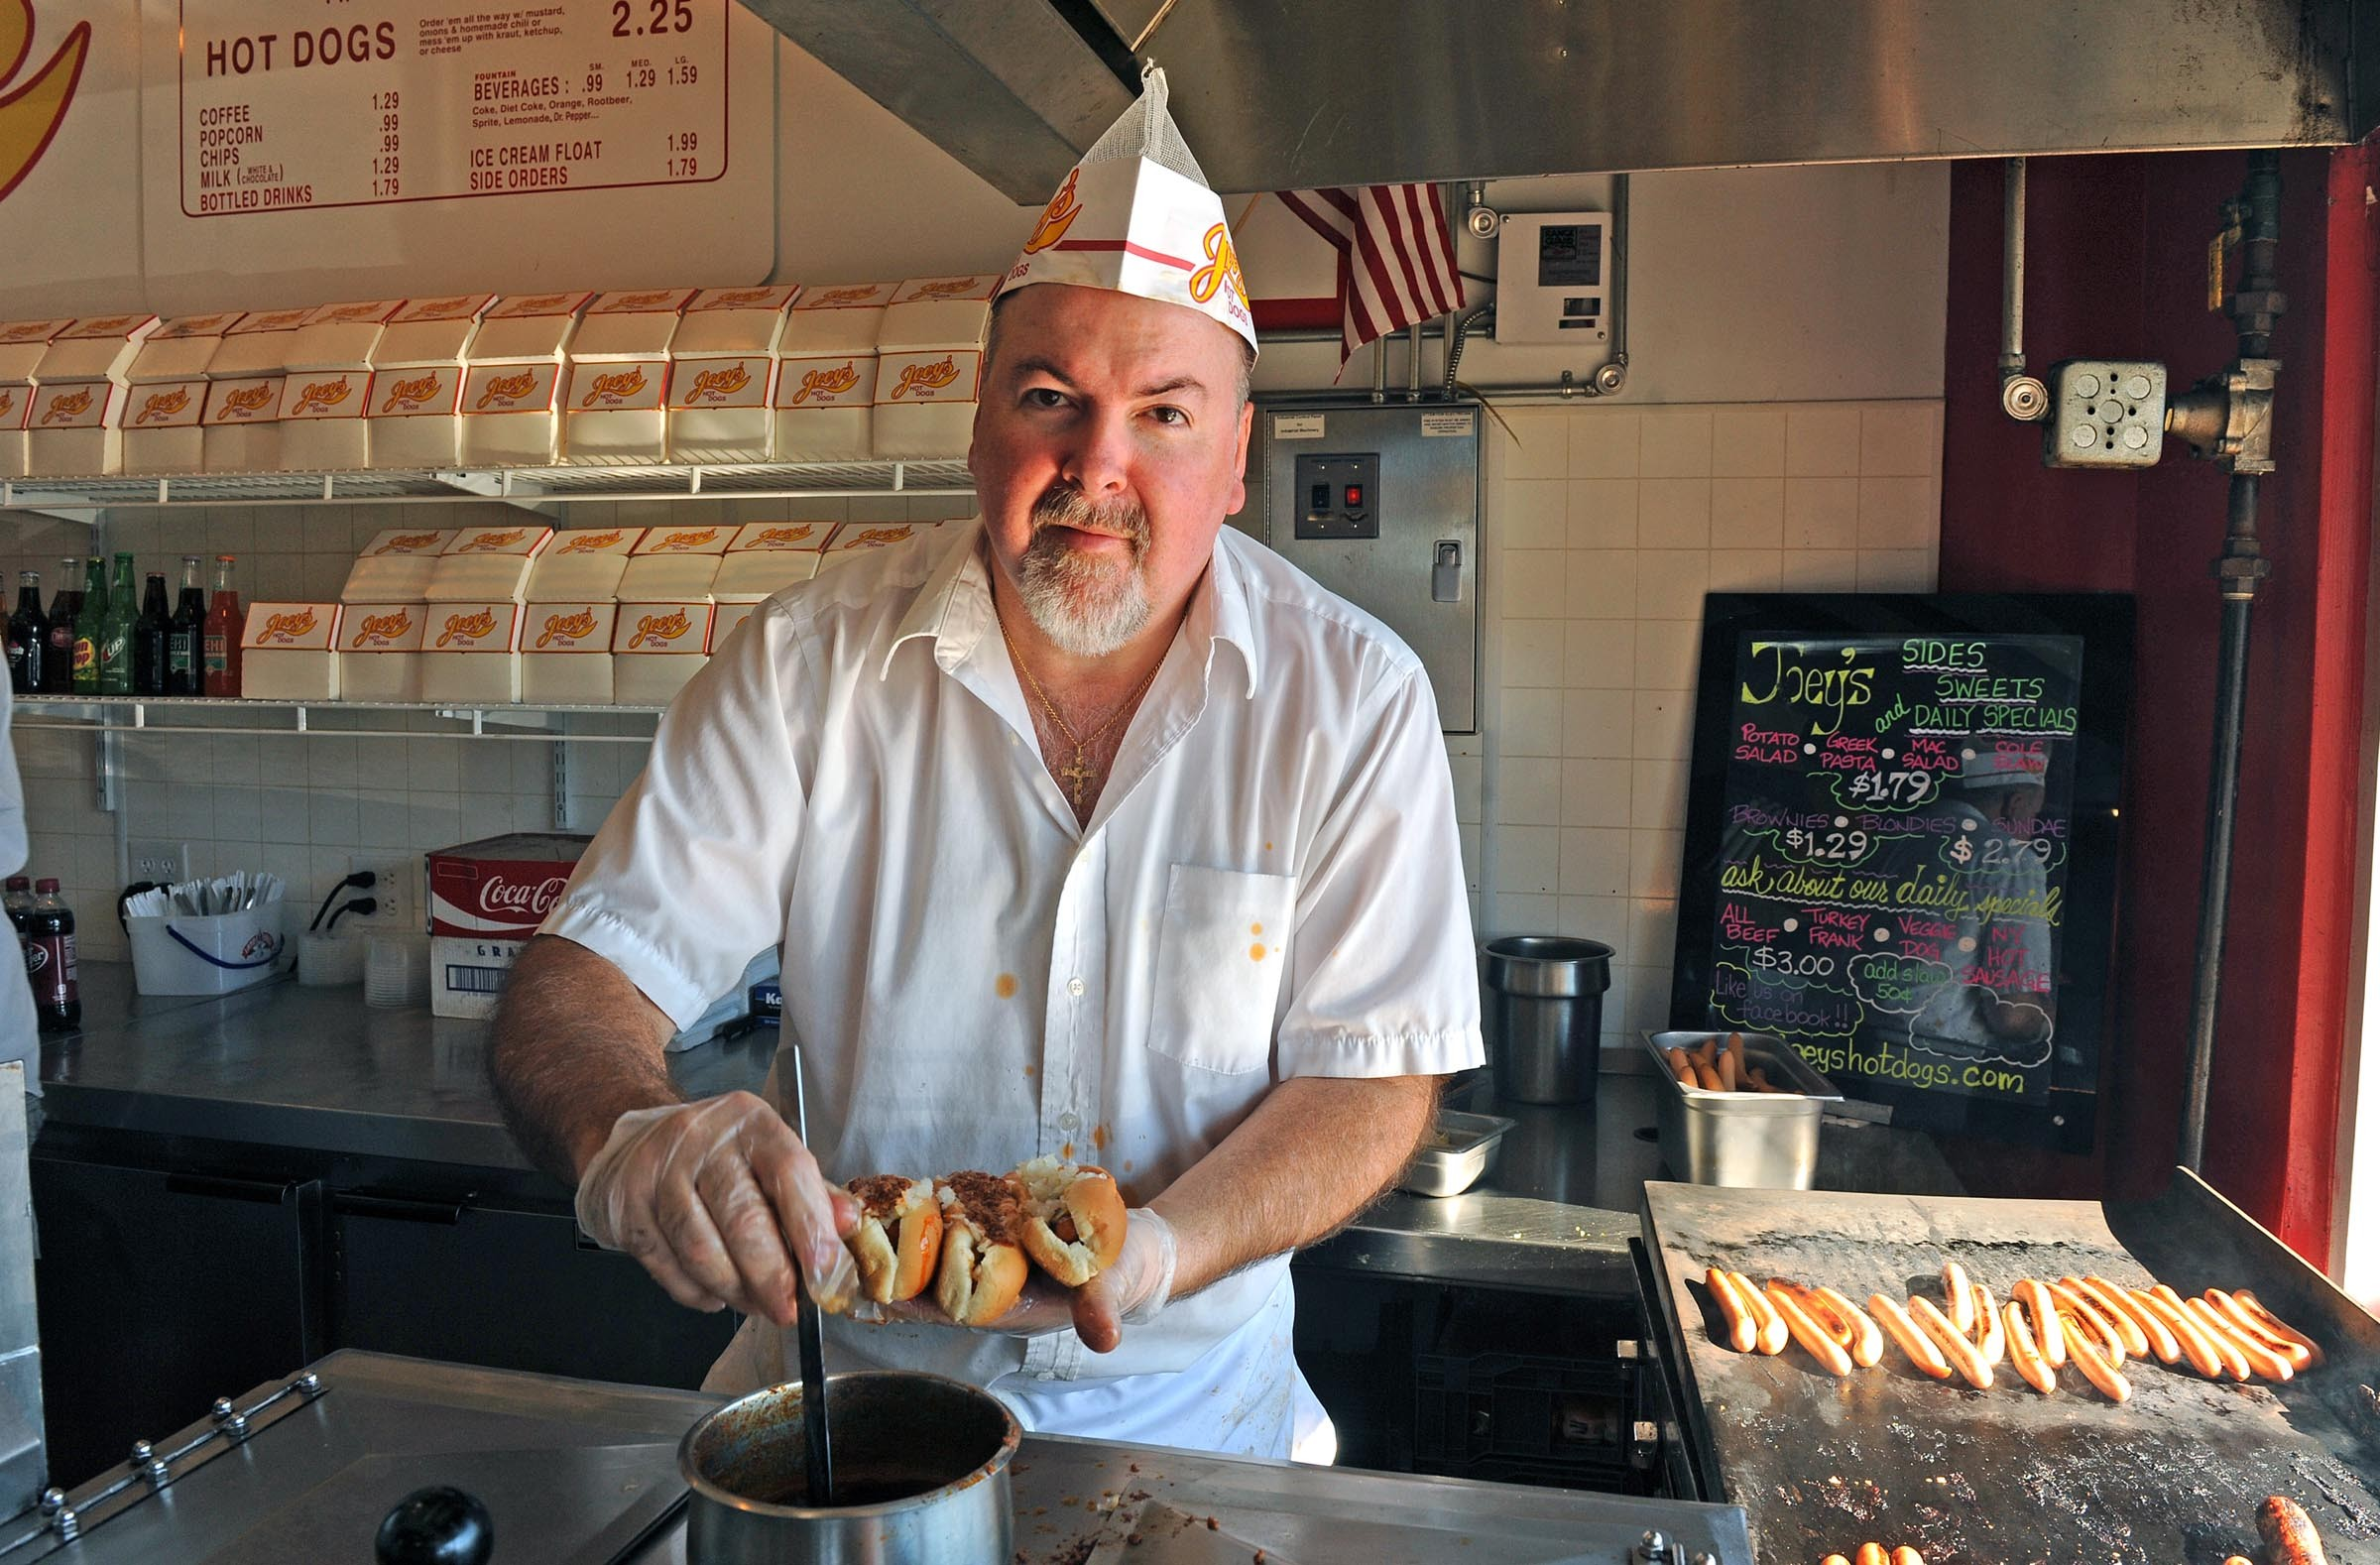 """Joey Mirabile of Joey's Hot Dogs was a vocal and visible critic of the meals tax measure. For a while, his meals came with """"no meals tax"""" fliers. - SCOTT ELMQUIST"""